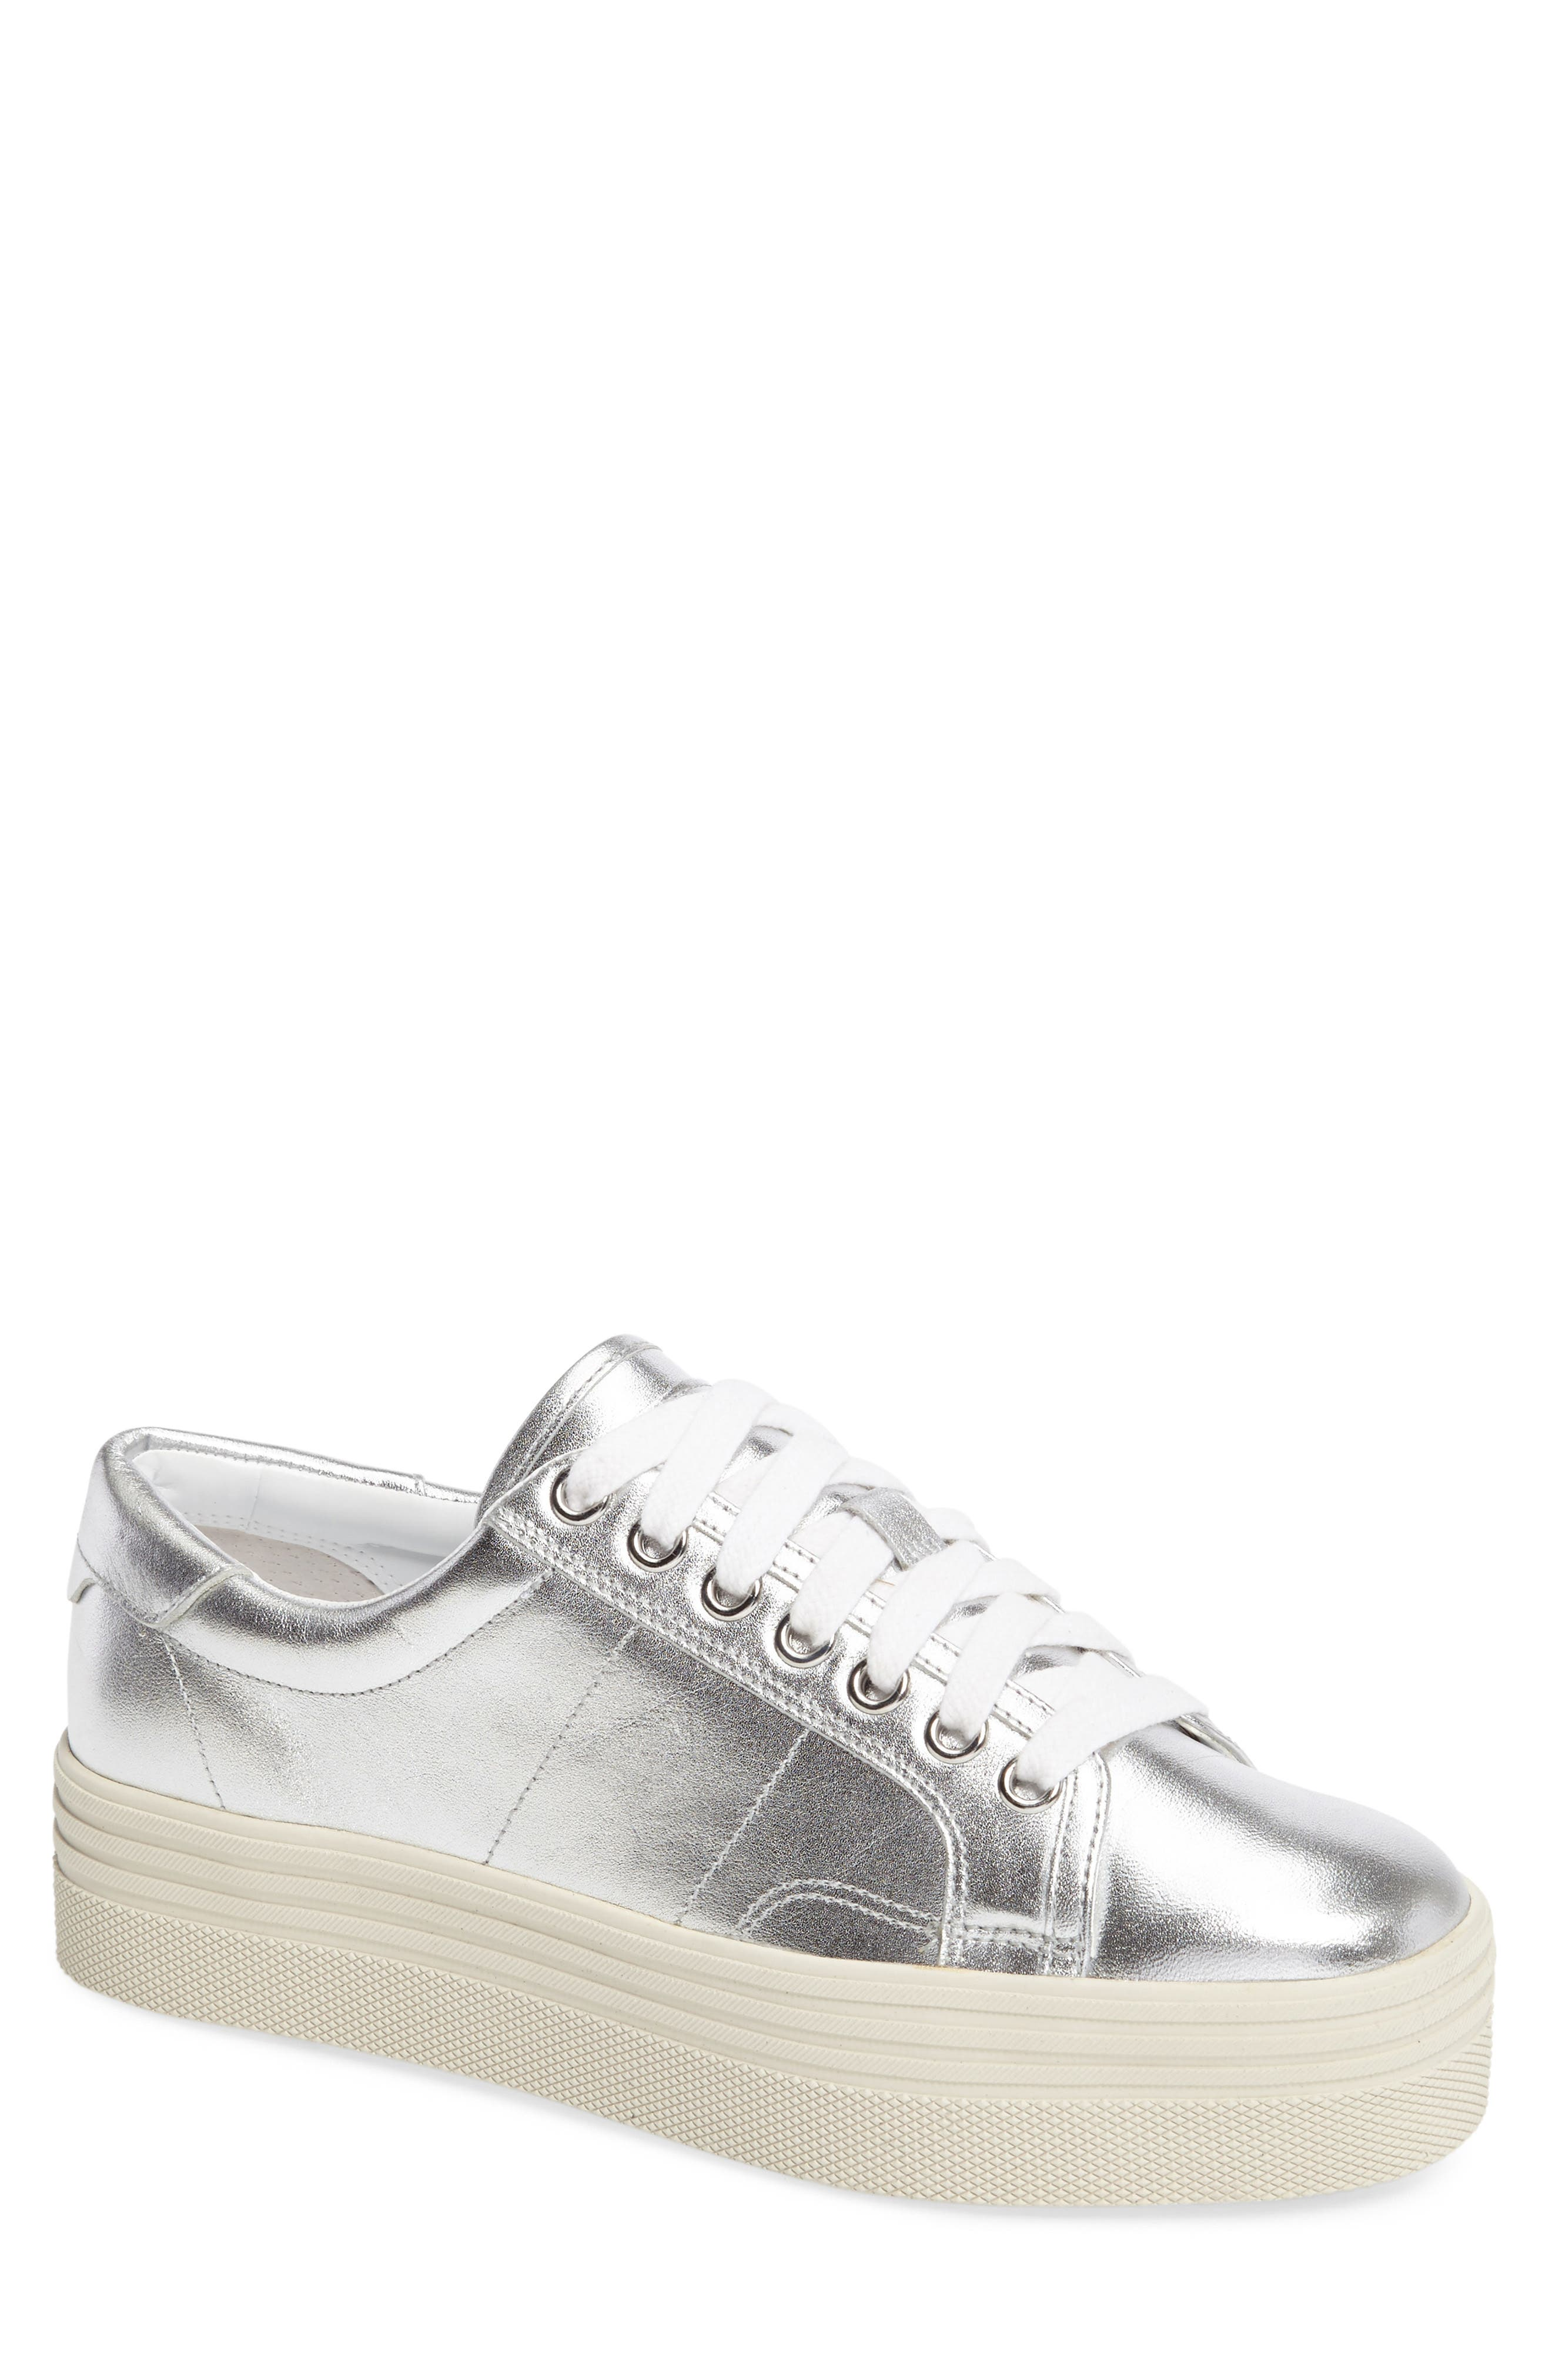 Emmy Platform Sneaker,                             Main thumbnail 5, color,